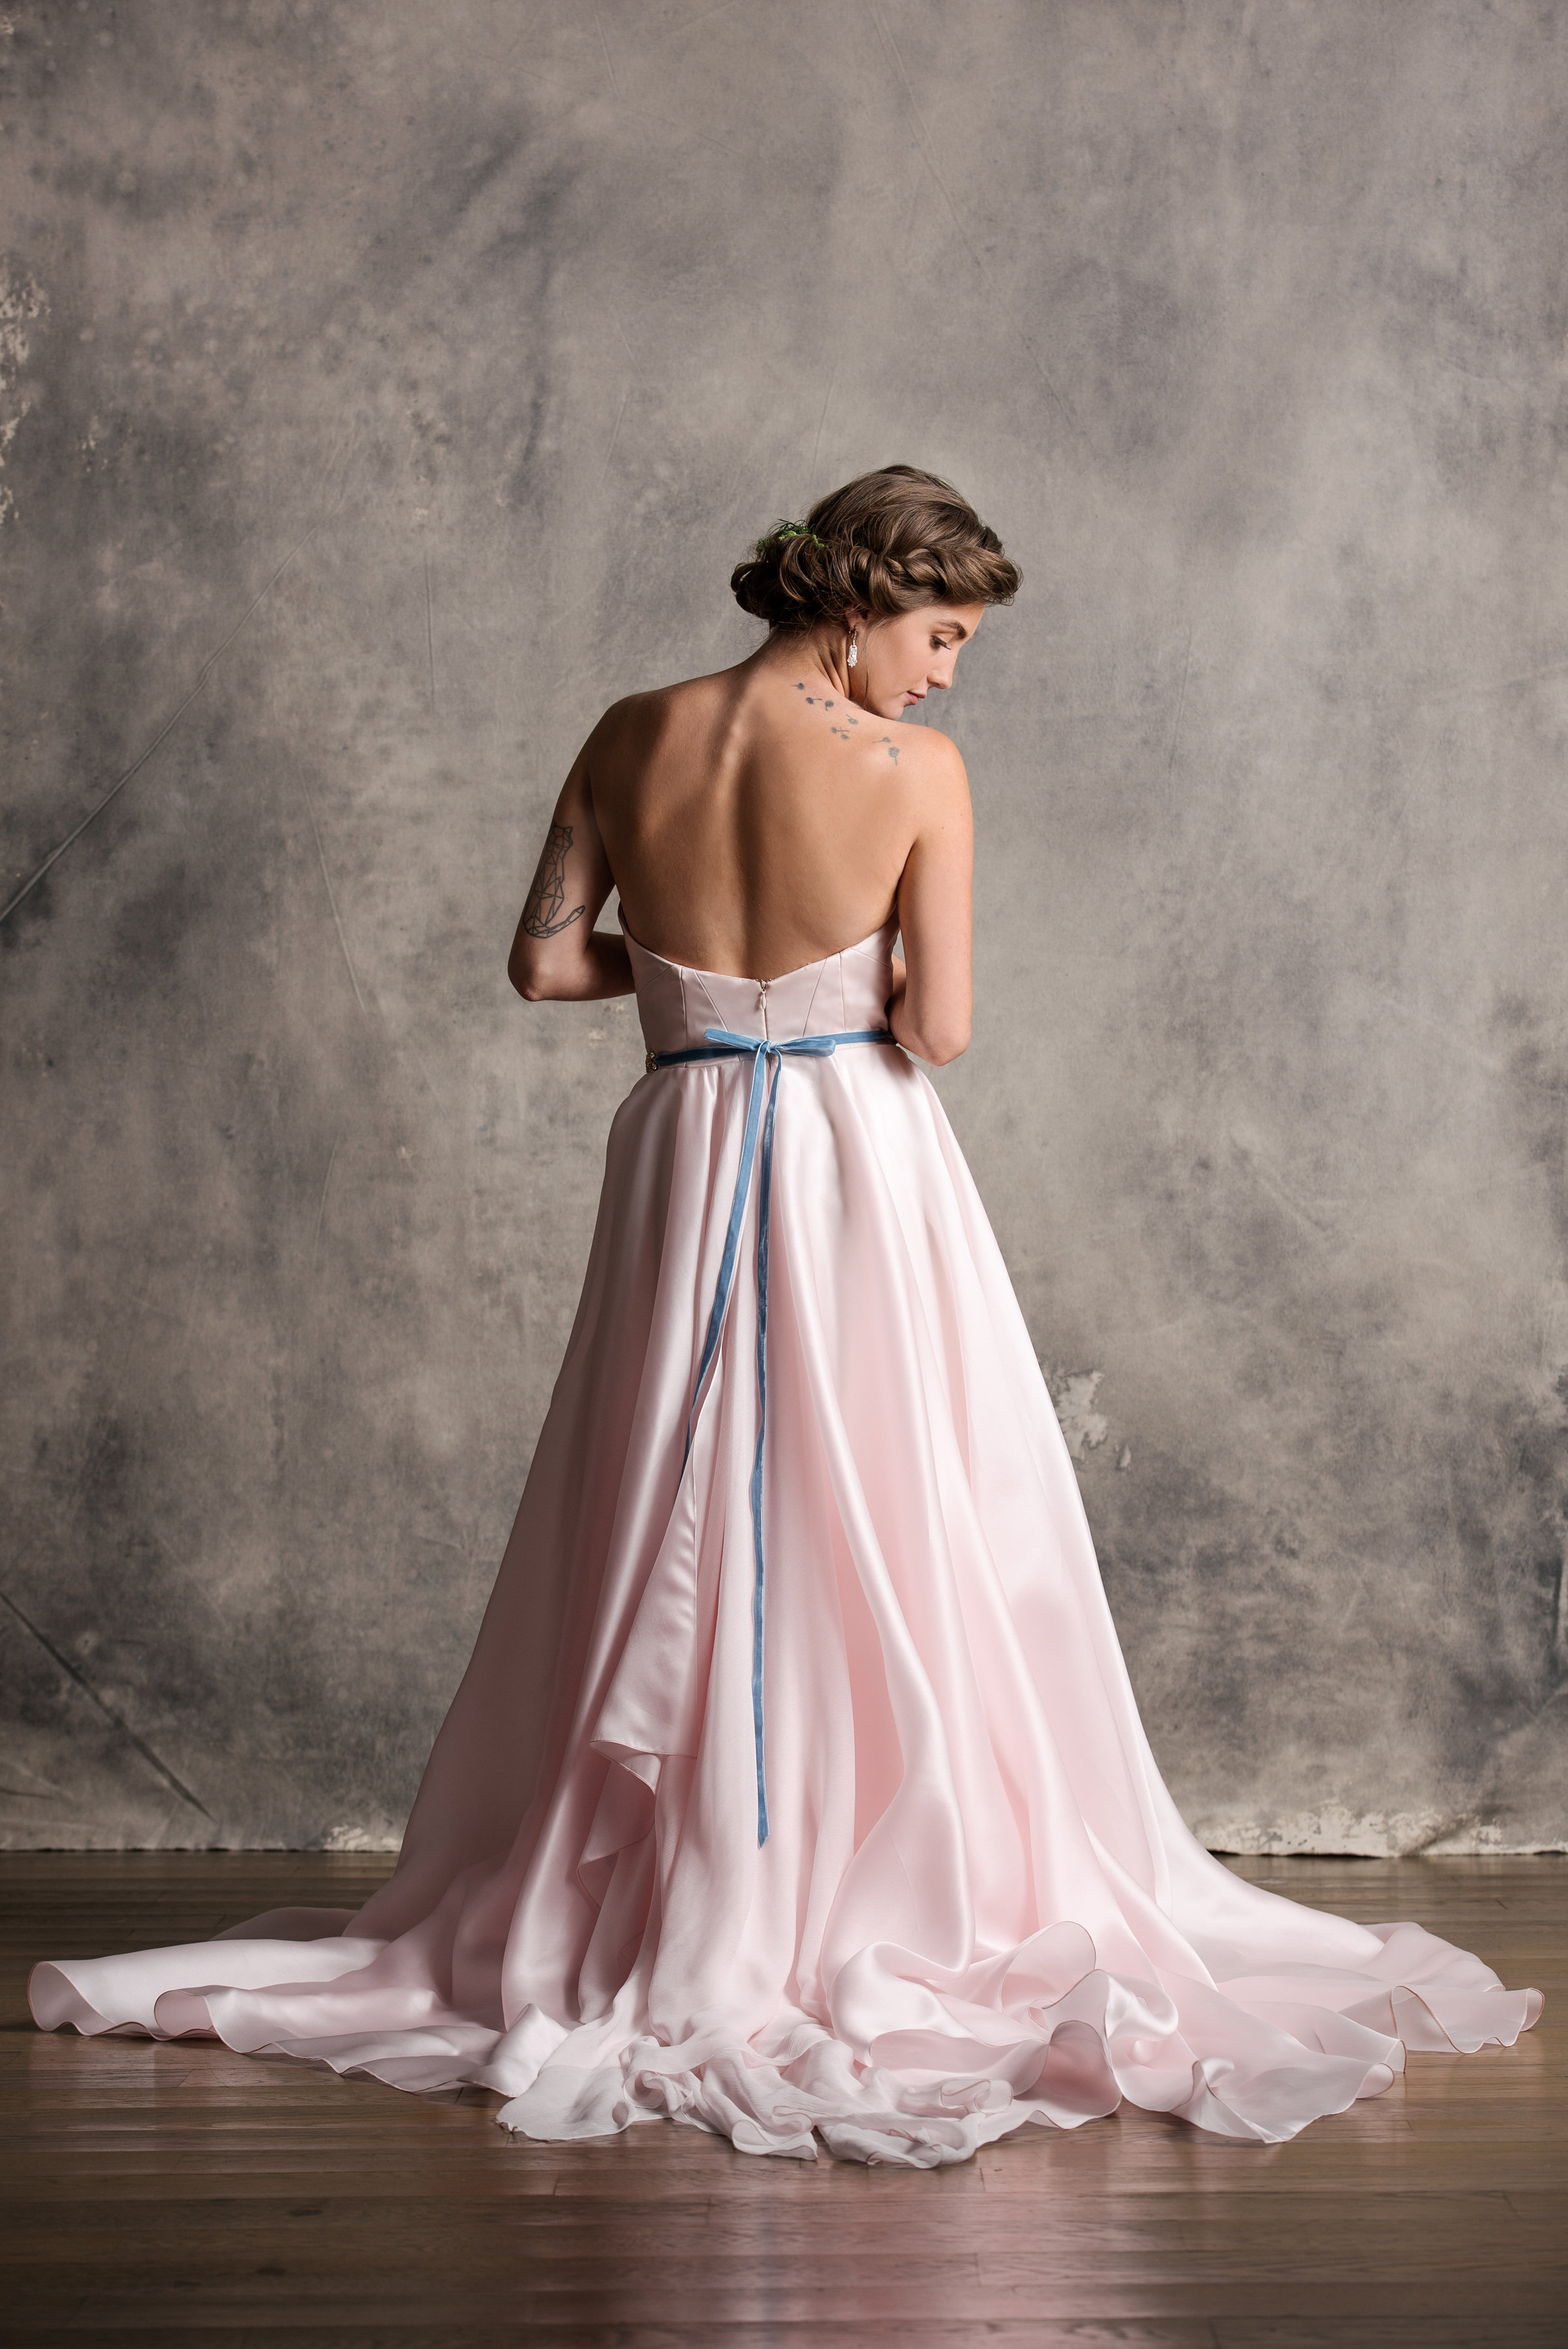 Aurora - Named after the Aurora Borealis with a skirt that flows with such grace. Her bodice is composed with seams that build structure and is softened with a subtle sweetheart neckline.In norse mythology, The Aurora Borealis is believed to be the stars reflection against the armor of the Valkyries.